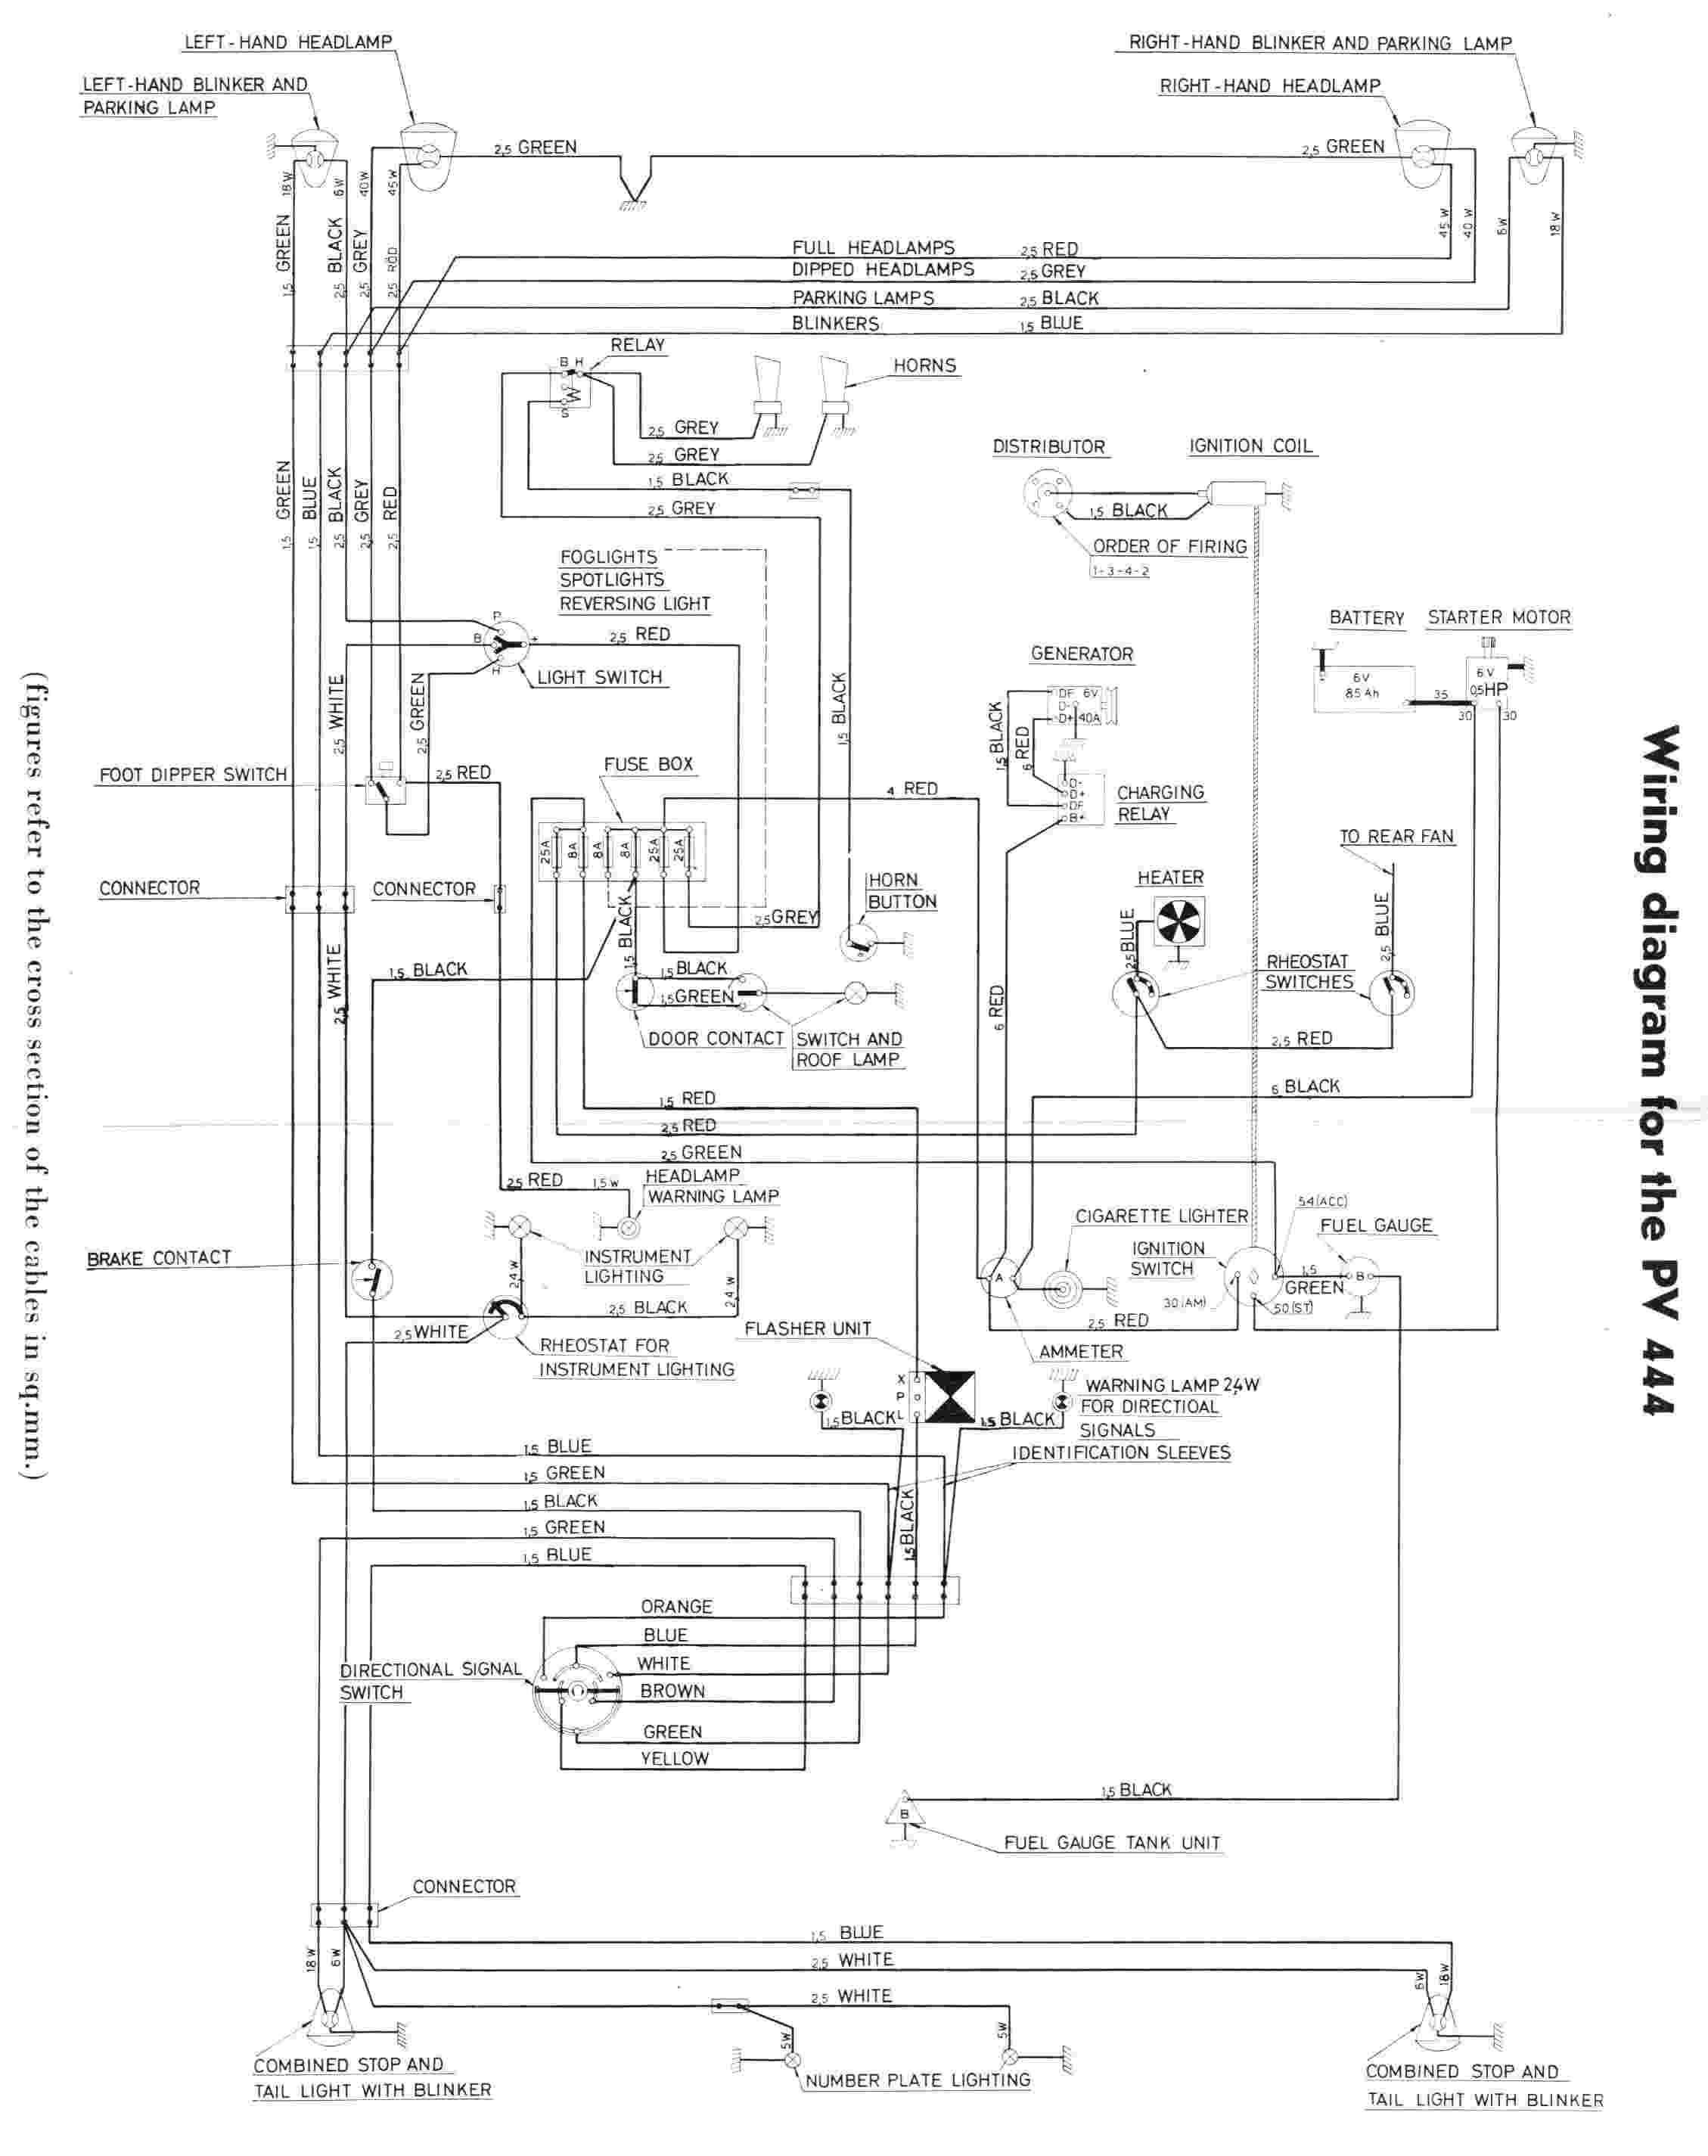 electrical wiring diagram of volvo pv444 volvo semi truck wiring diagram dolgular com  at webbmarketing.co